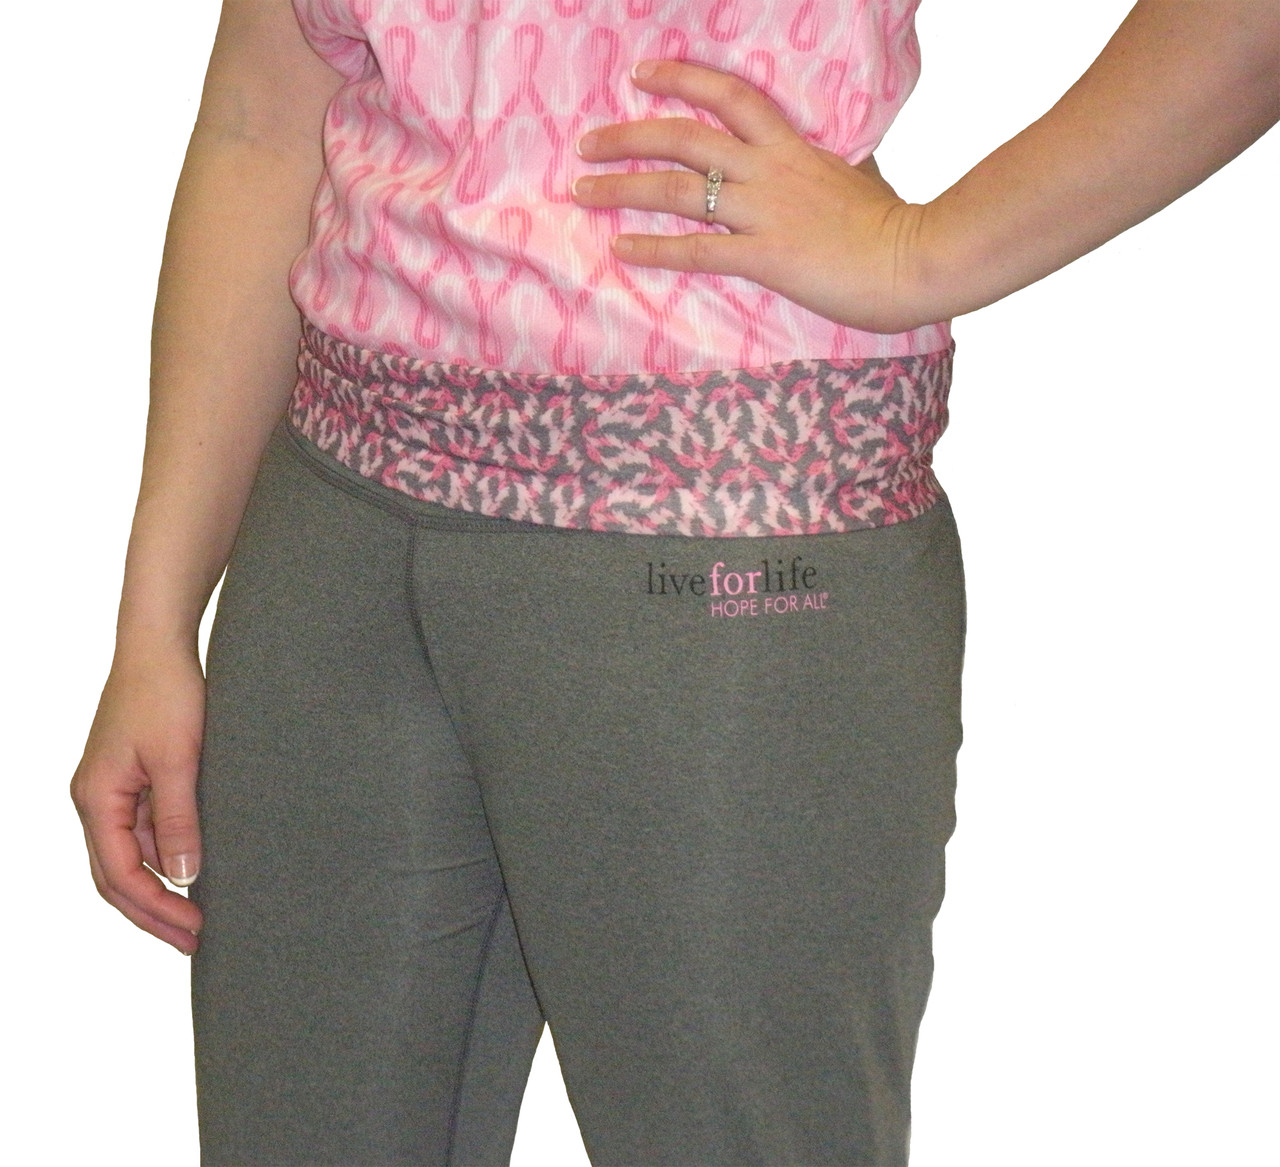 e5c5751b00c4a9 Categories. Home · Women · Sportswear · Athletic Wear · Cancer Support  Clothing ...